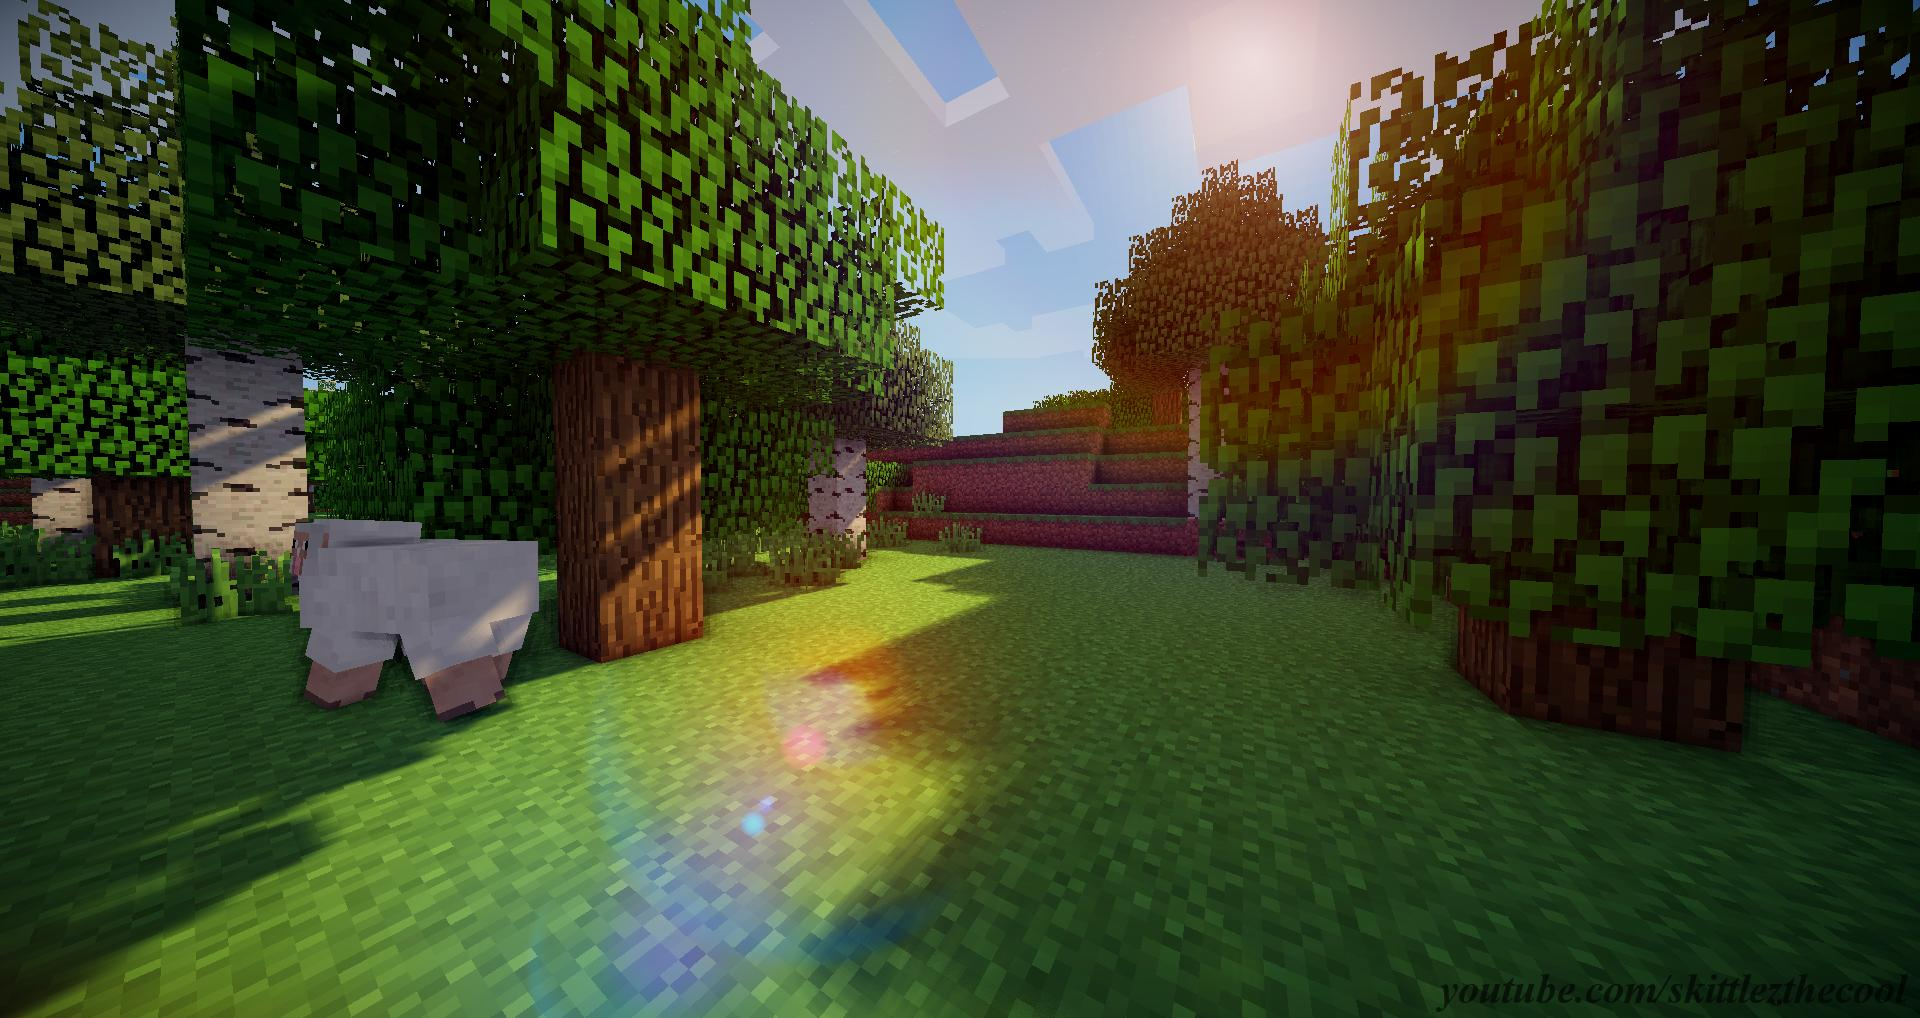 Simple Wallpaper Minecraft Plain - minecraft-scenery-wallpaper-19  Perfect Image Reference_123128.jpg